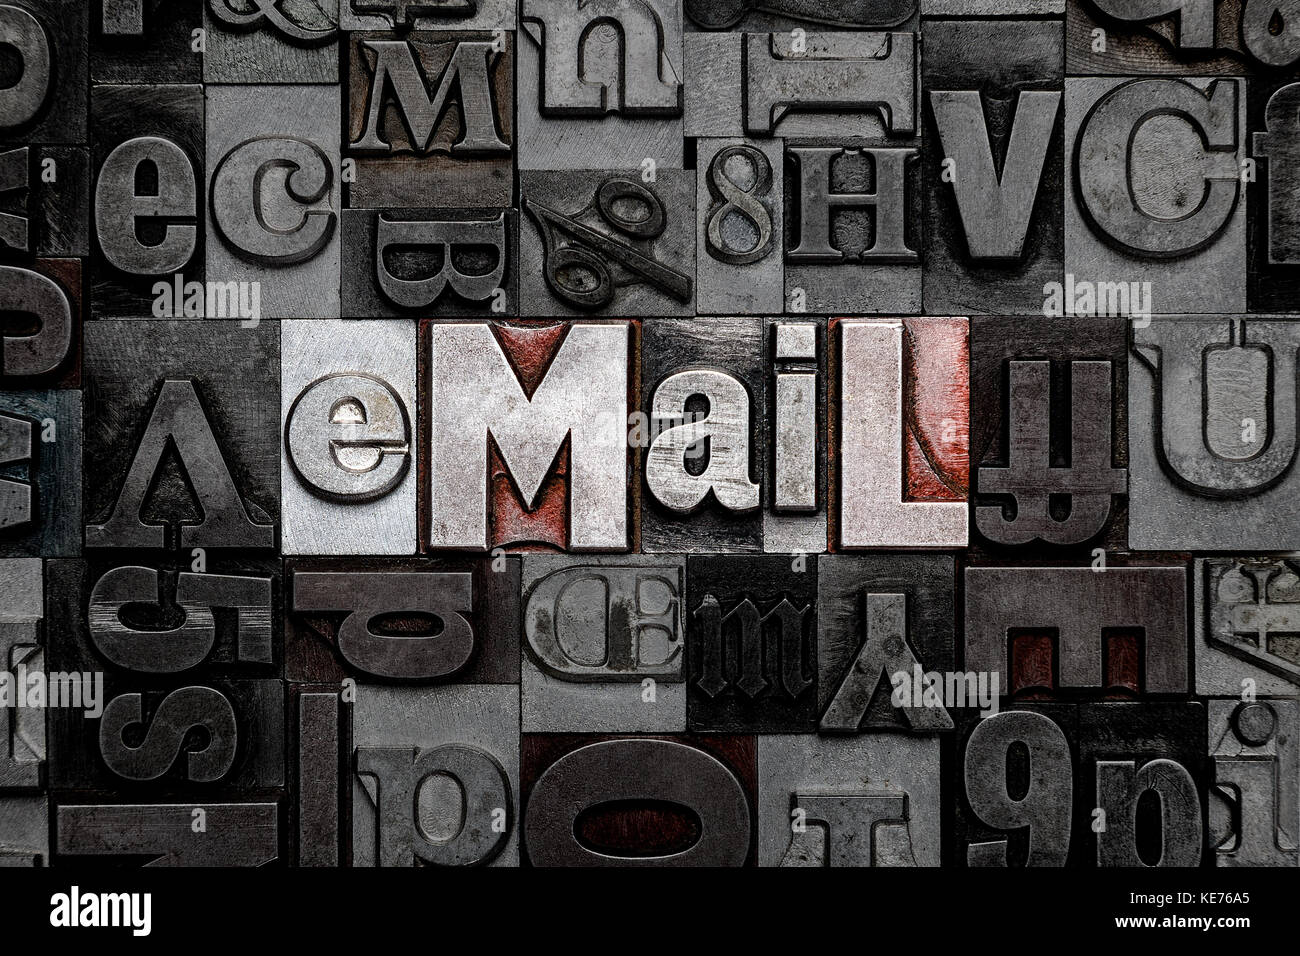 The word eMail made from old metal letterpress letters - Stock Image